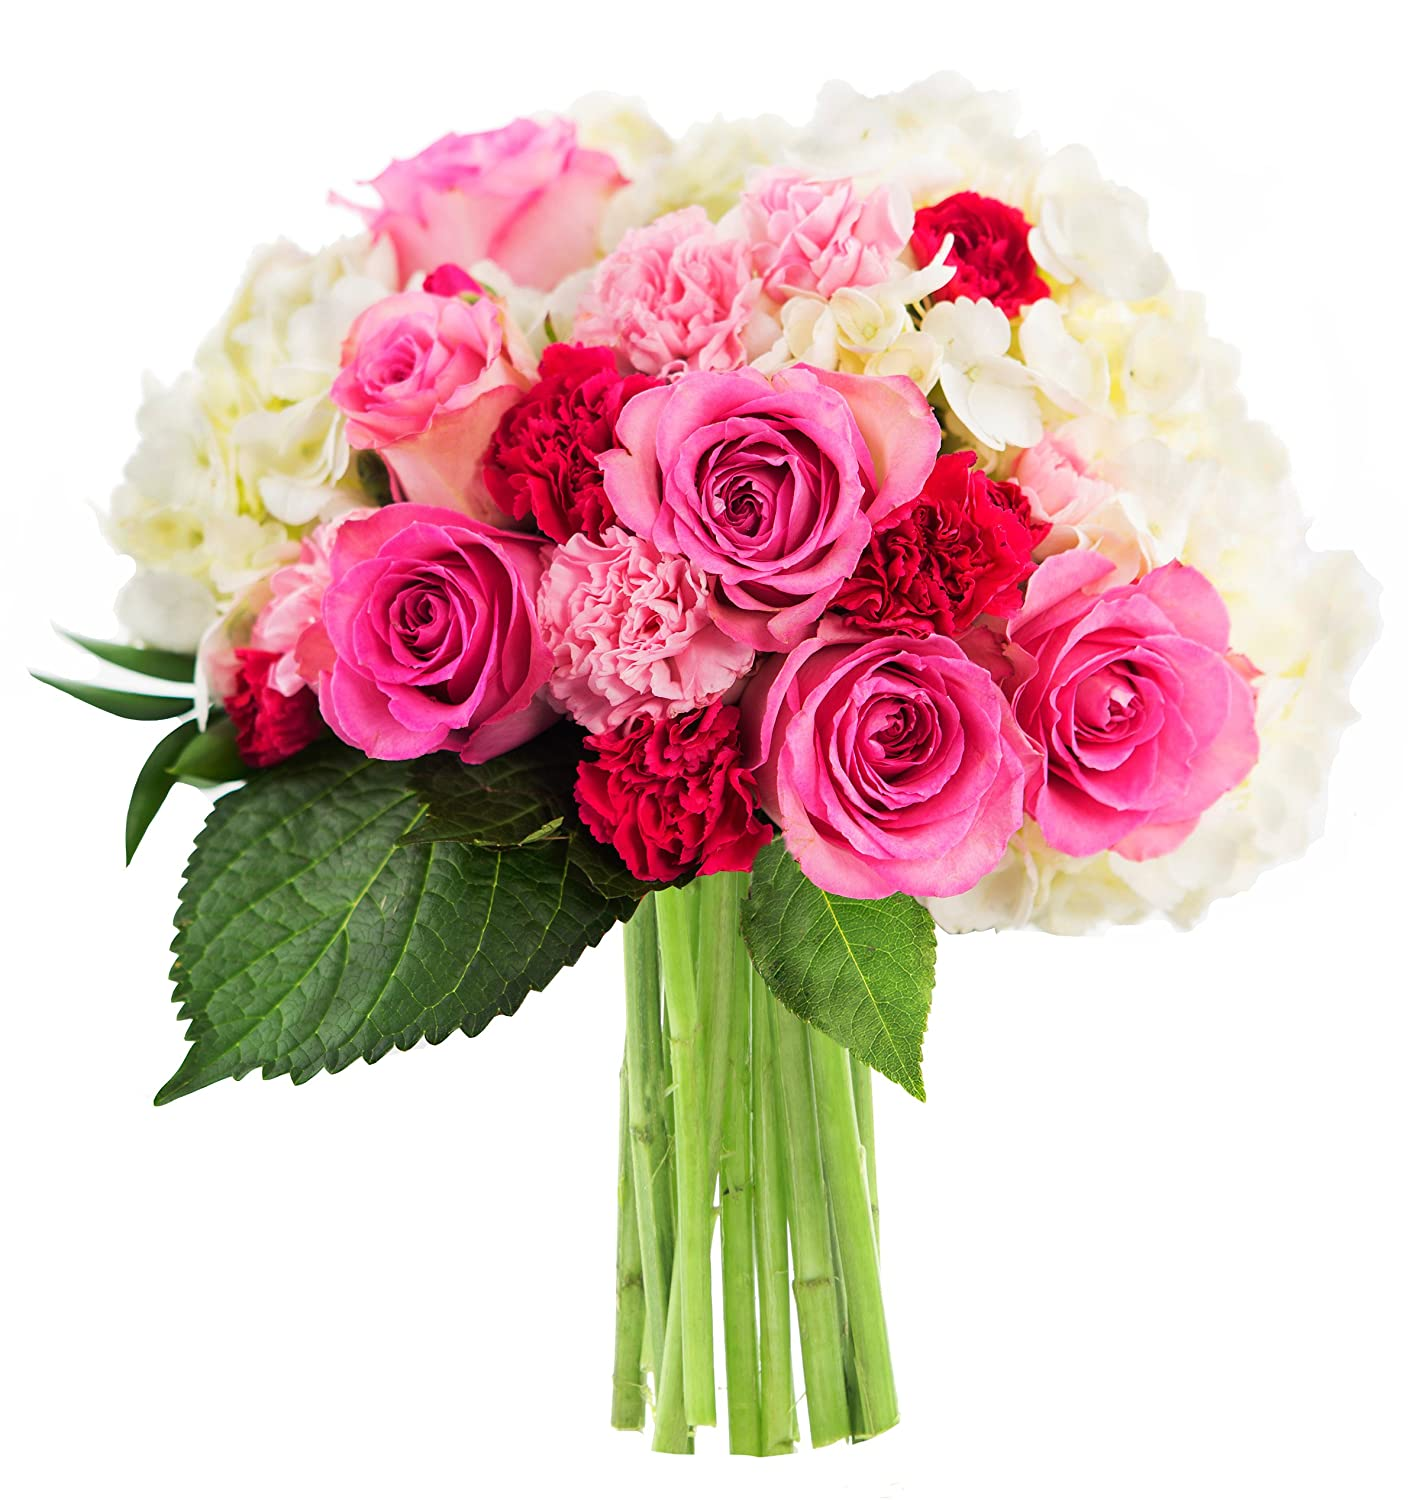 Amazon.com : Let Them Eat Cake Bouquet of Pink Roses and White ...